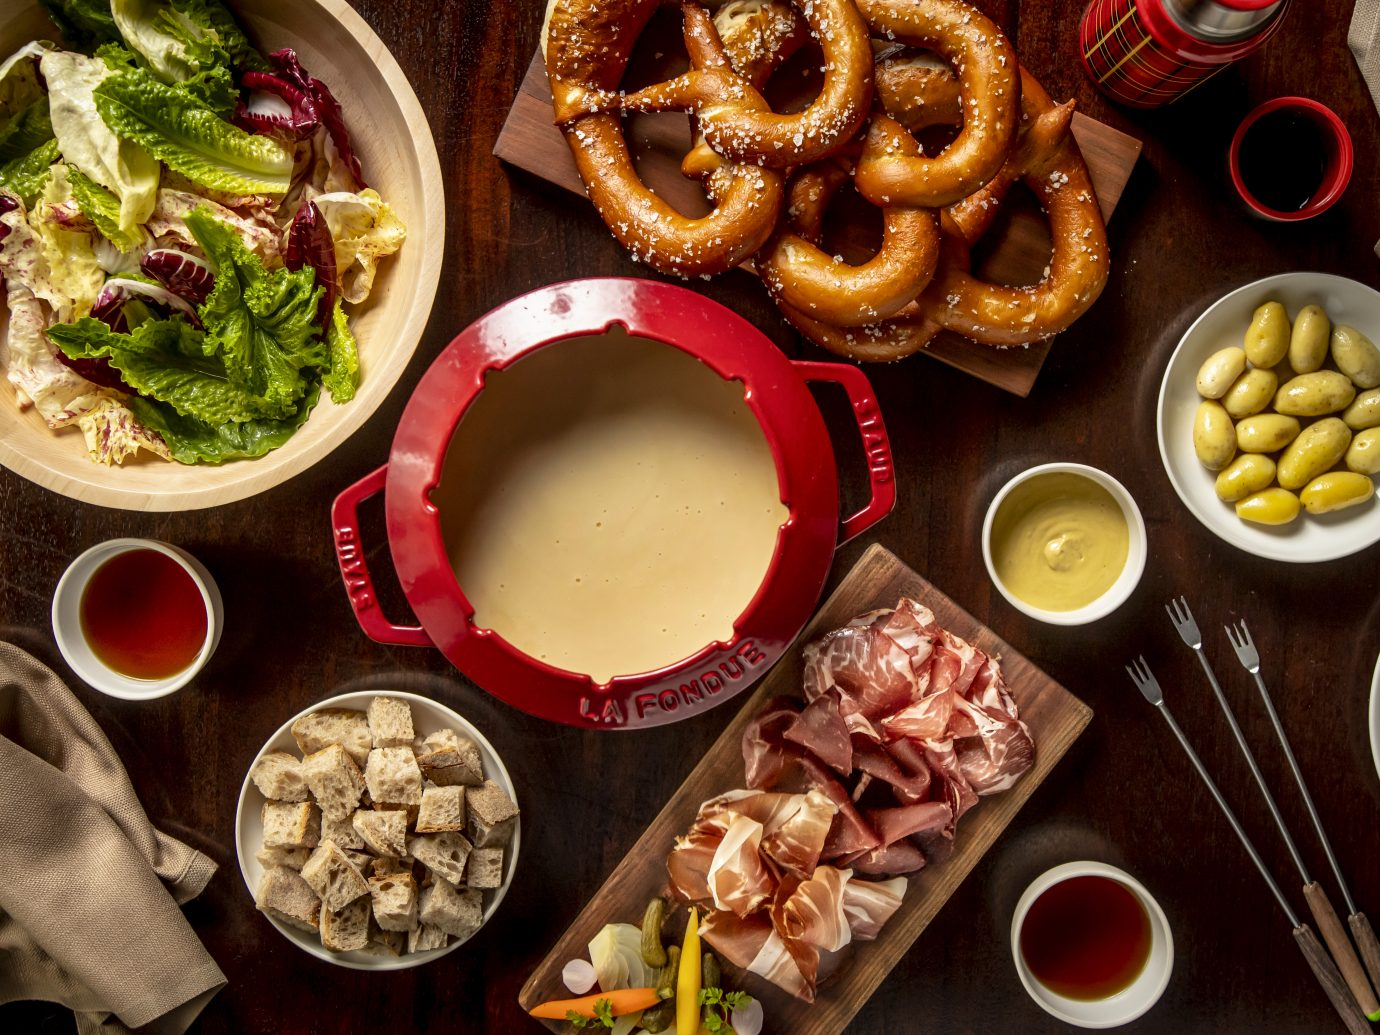 fondue with an assortment of foods to dip in it